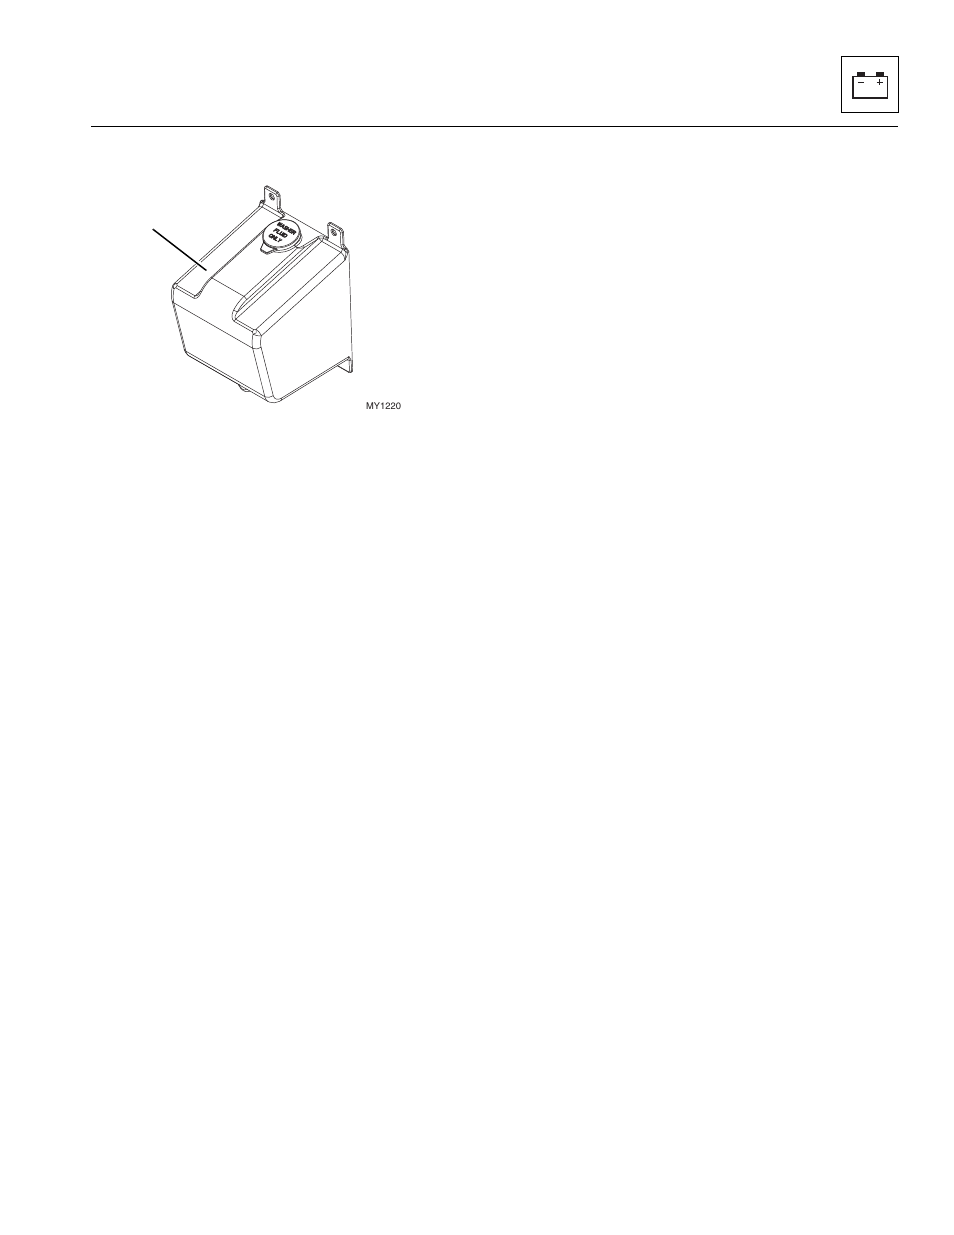 1 Windshield Rear Window Washer Reservoir Remove Wiring Harness Pins Jlg G12 55a Service Manual User Page 171 200